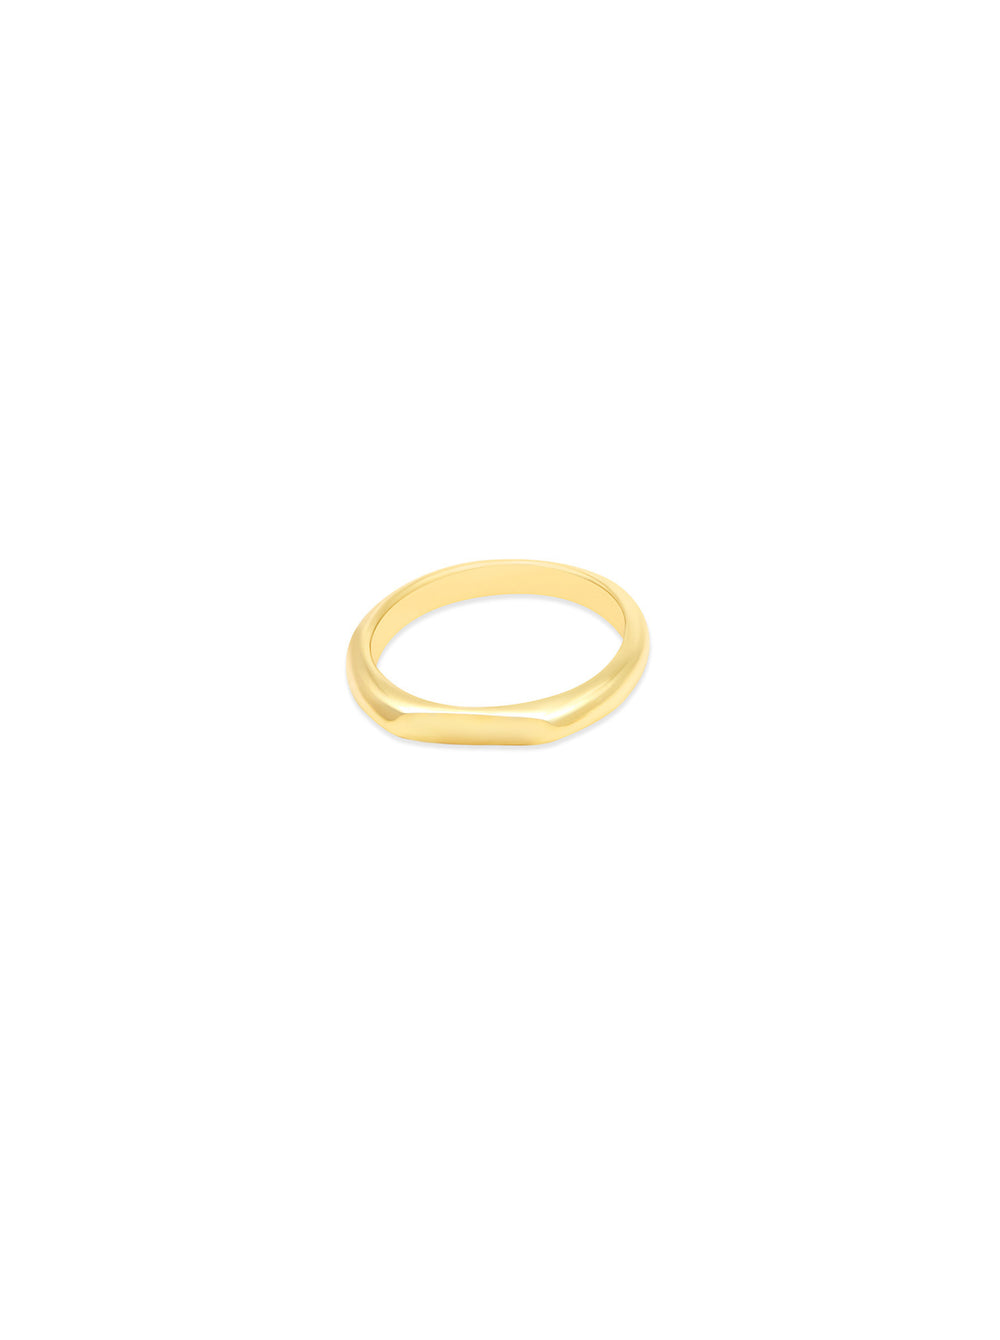 THE FLAT BAR SIGNET RING